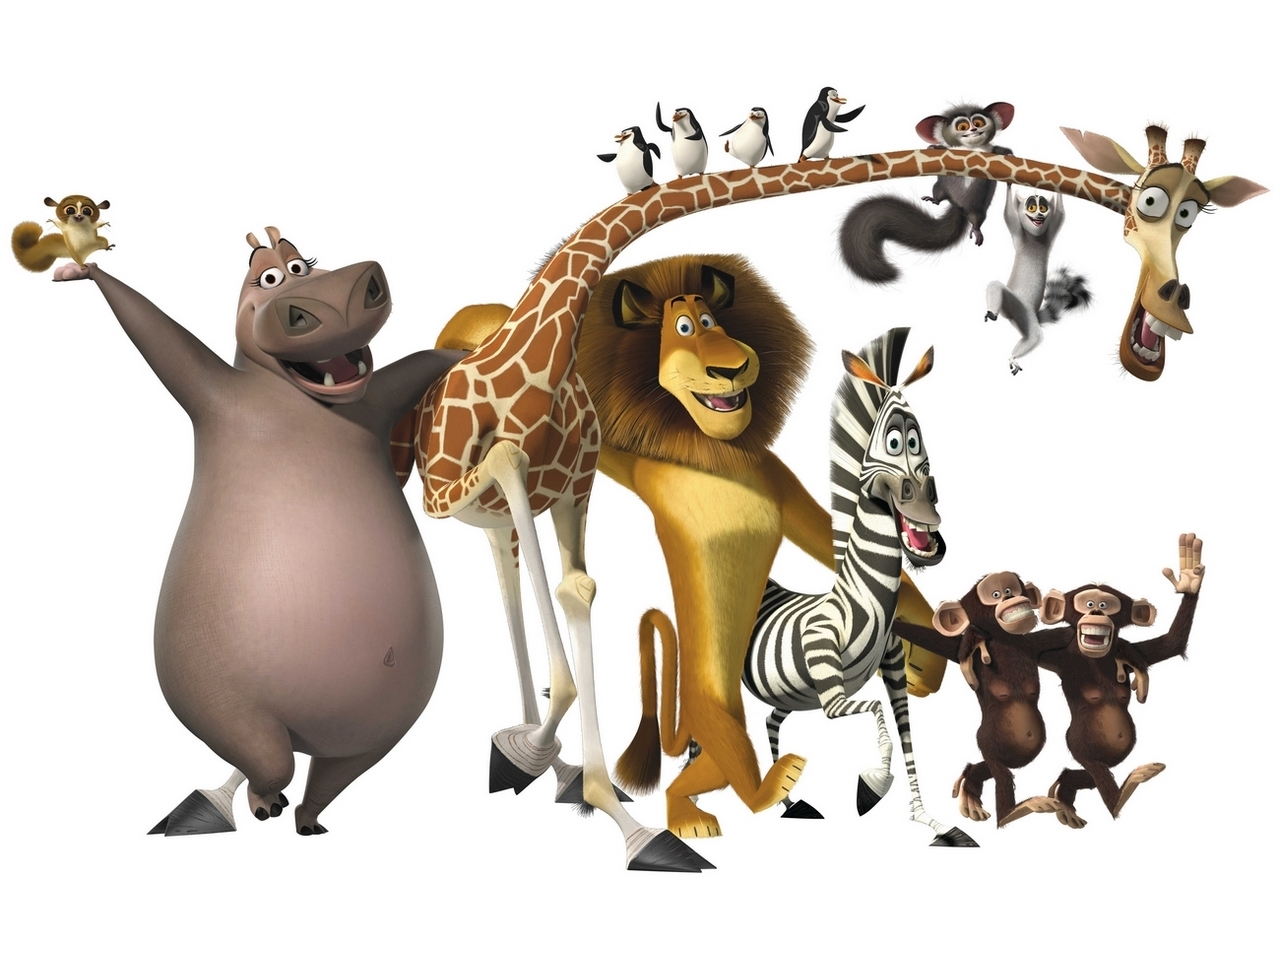 The Movie Madagascar Wallpaper For Ios 7